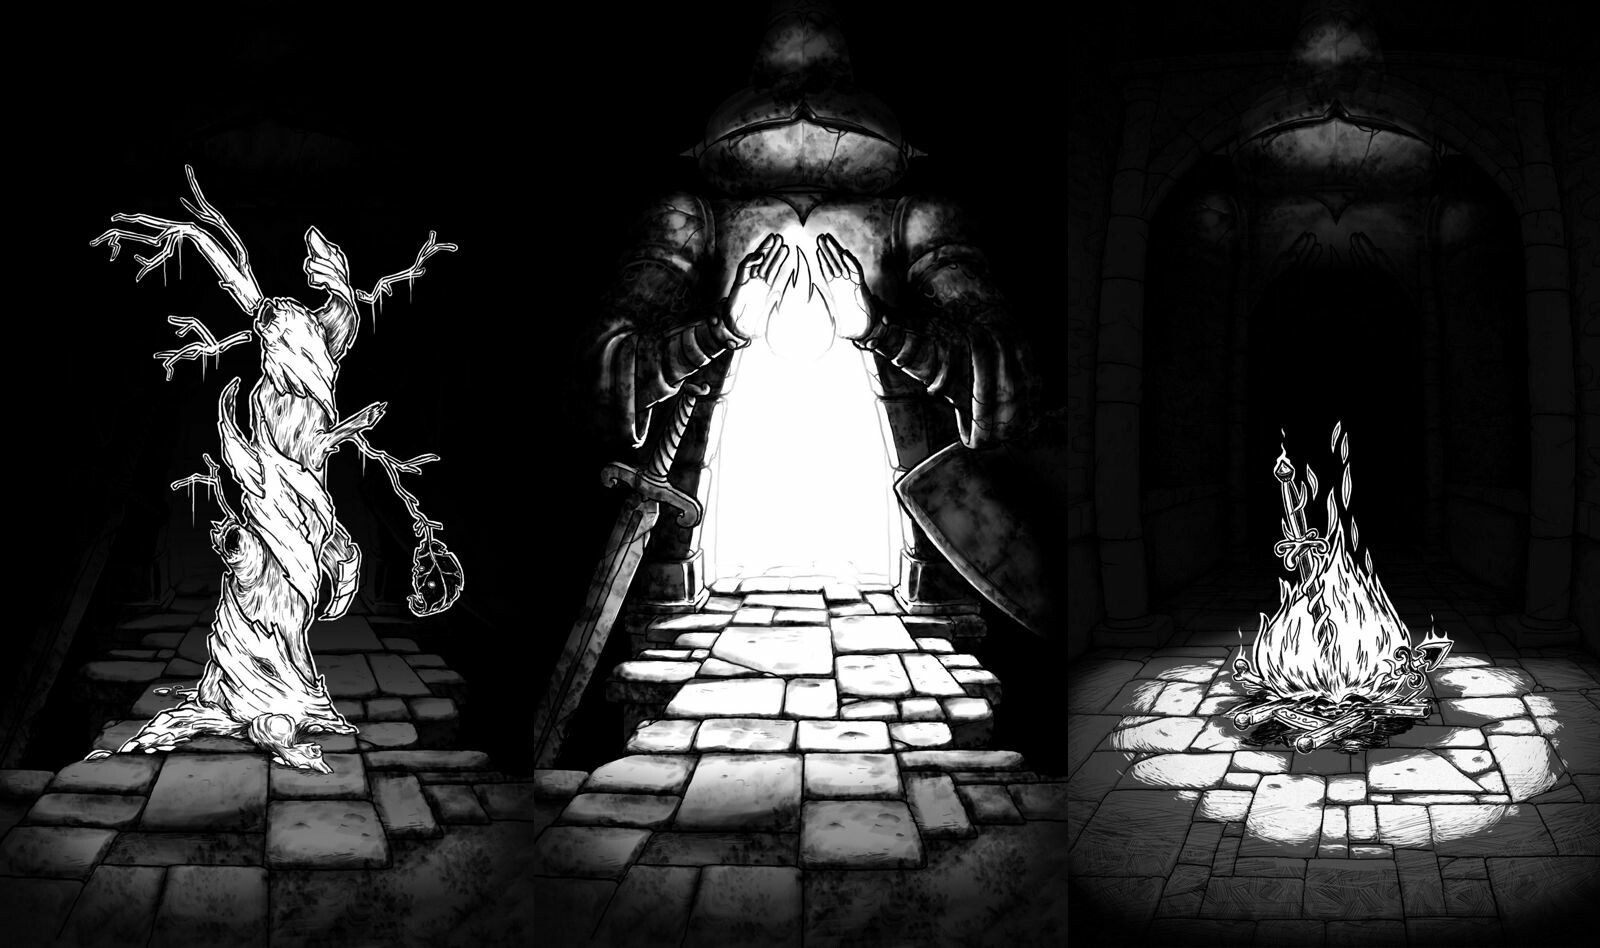 Several non-combat events can occur while roaming the dungeon.